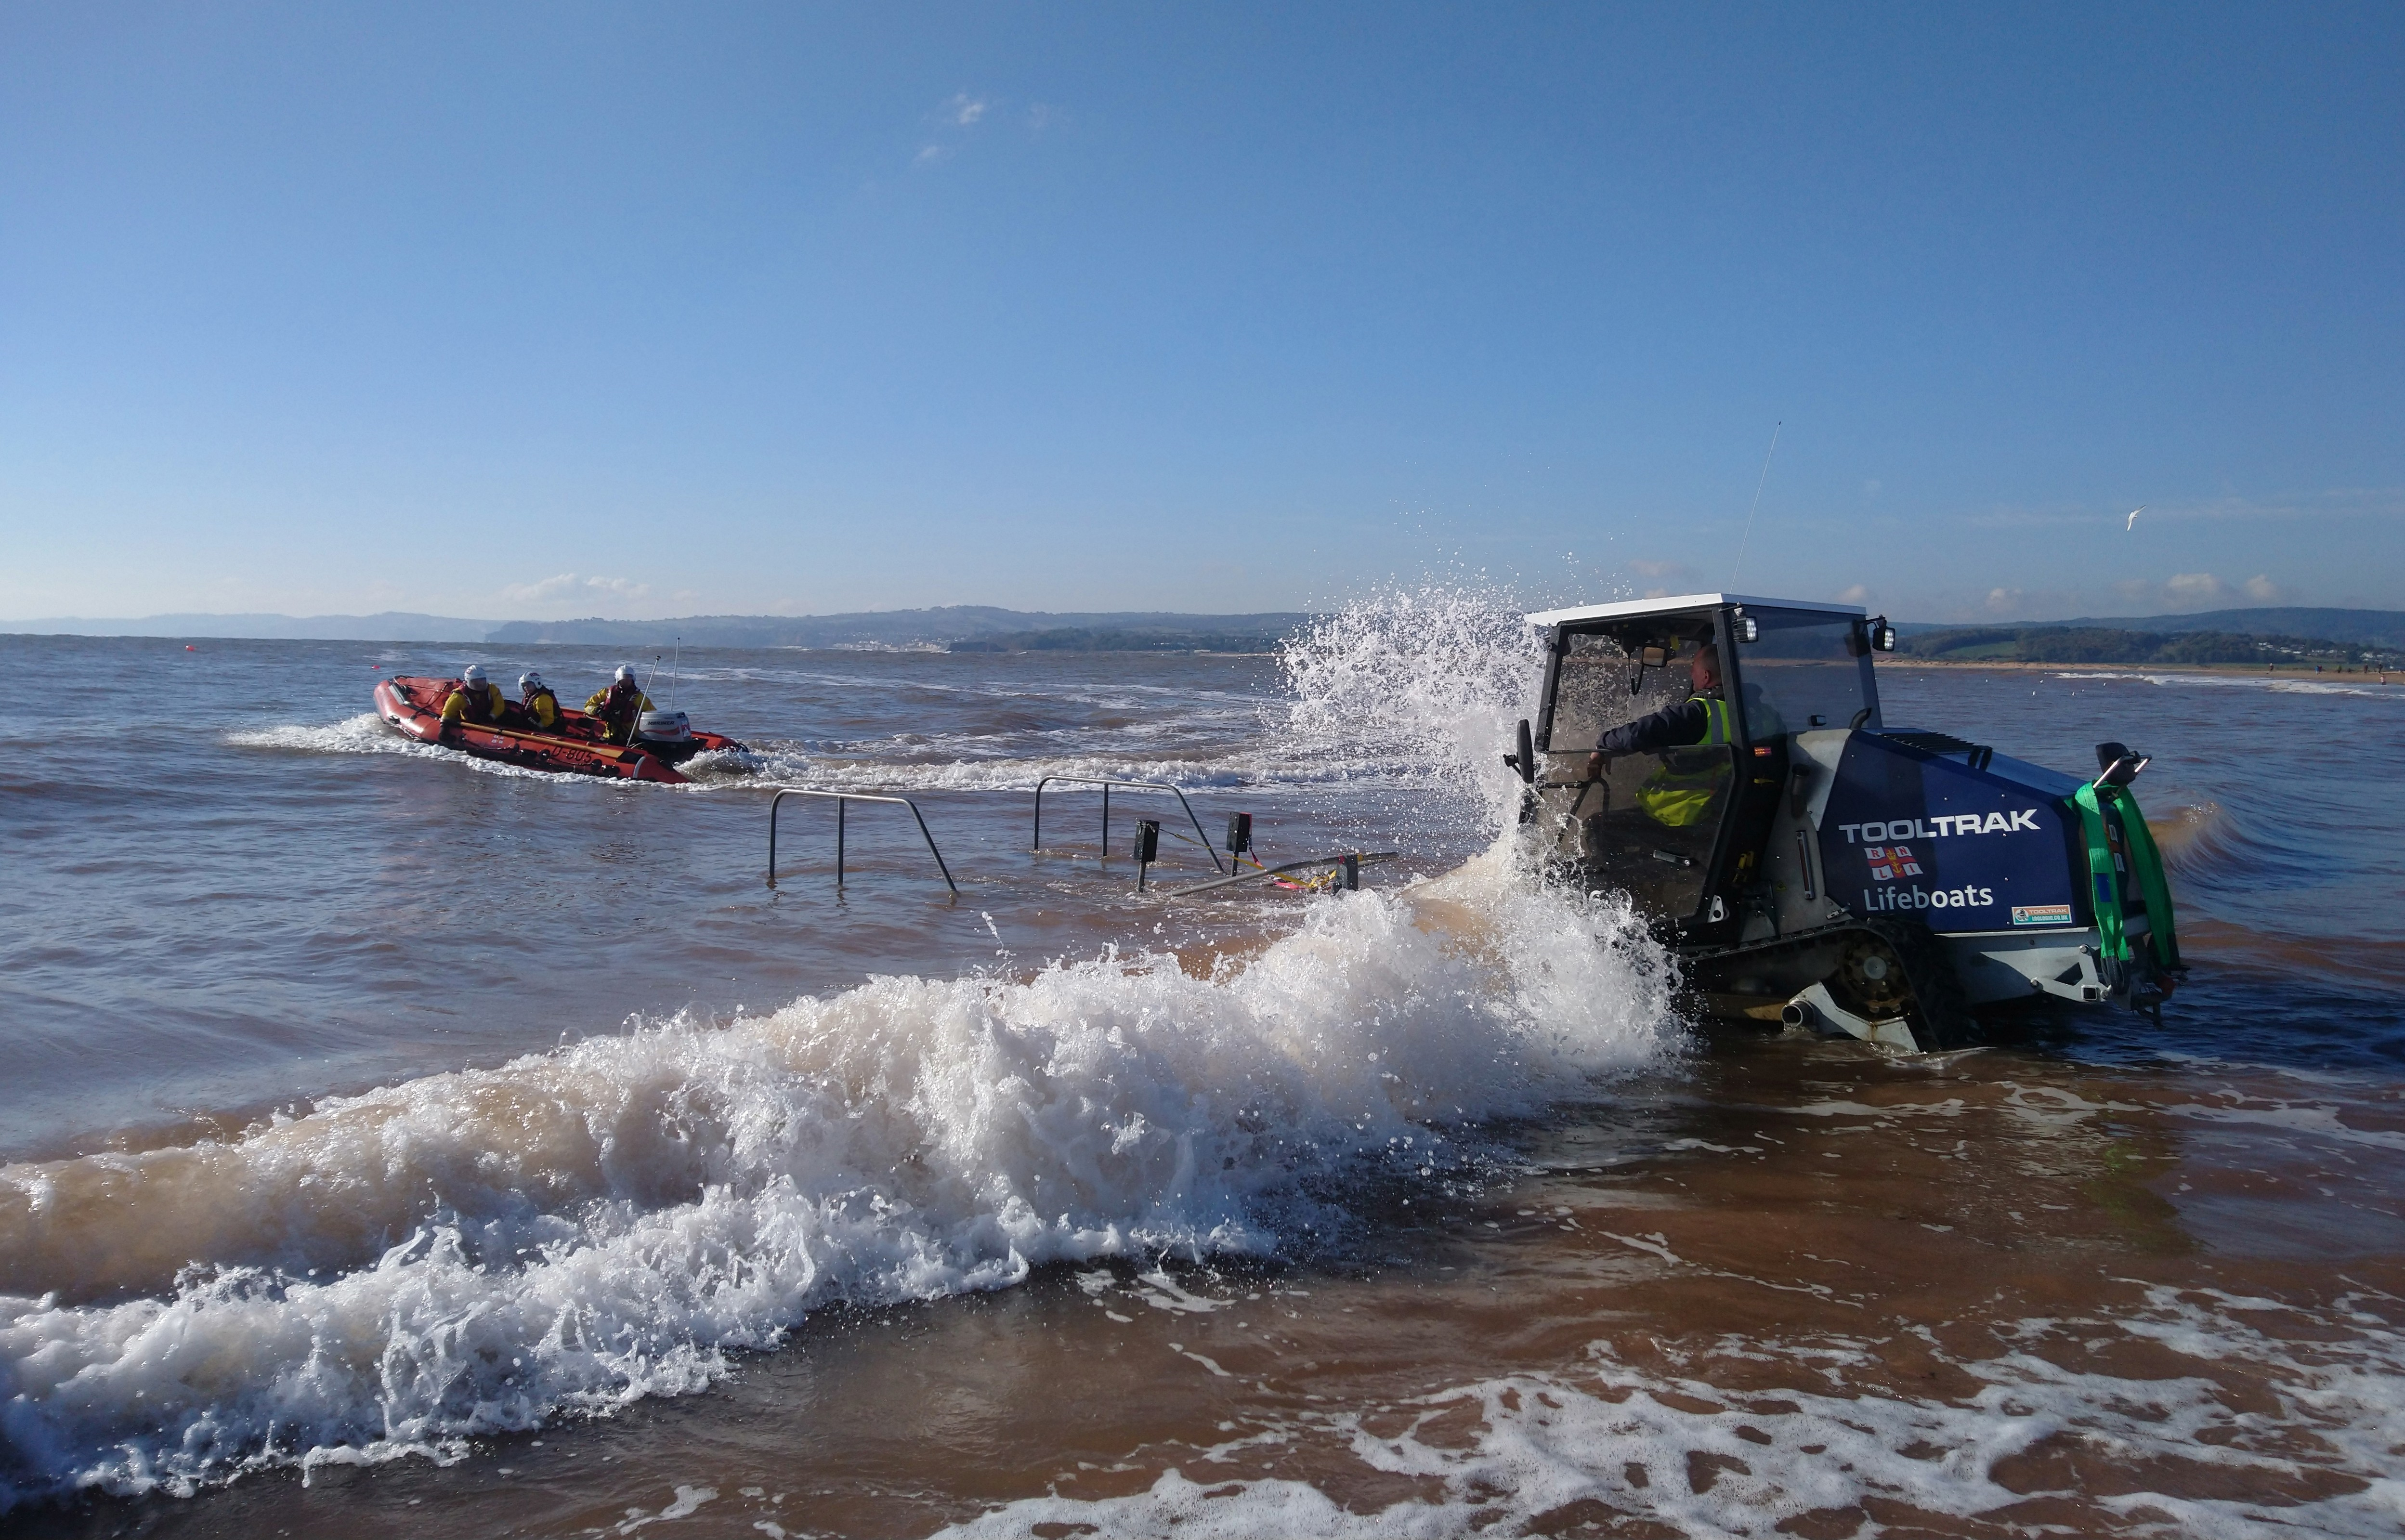 Inshore lifeboat George Bearman II recovers on the beach, after service